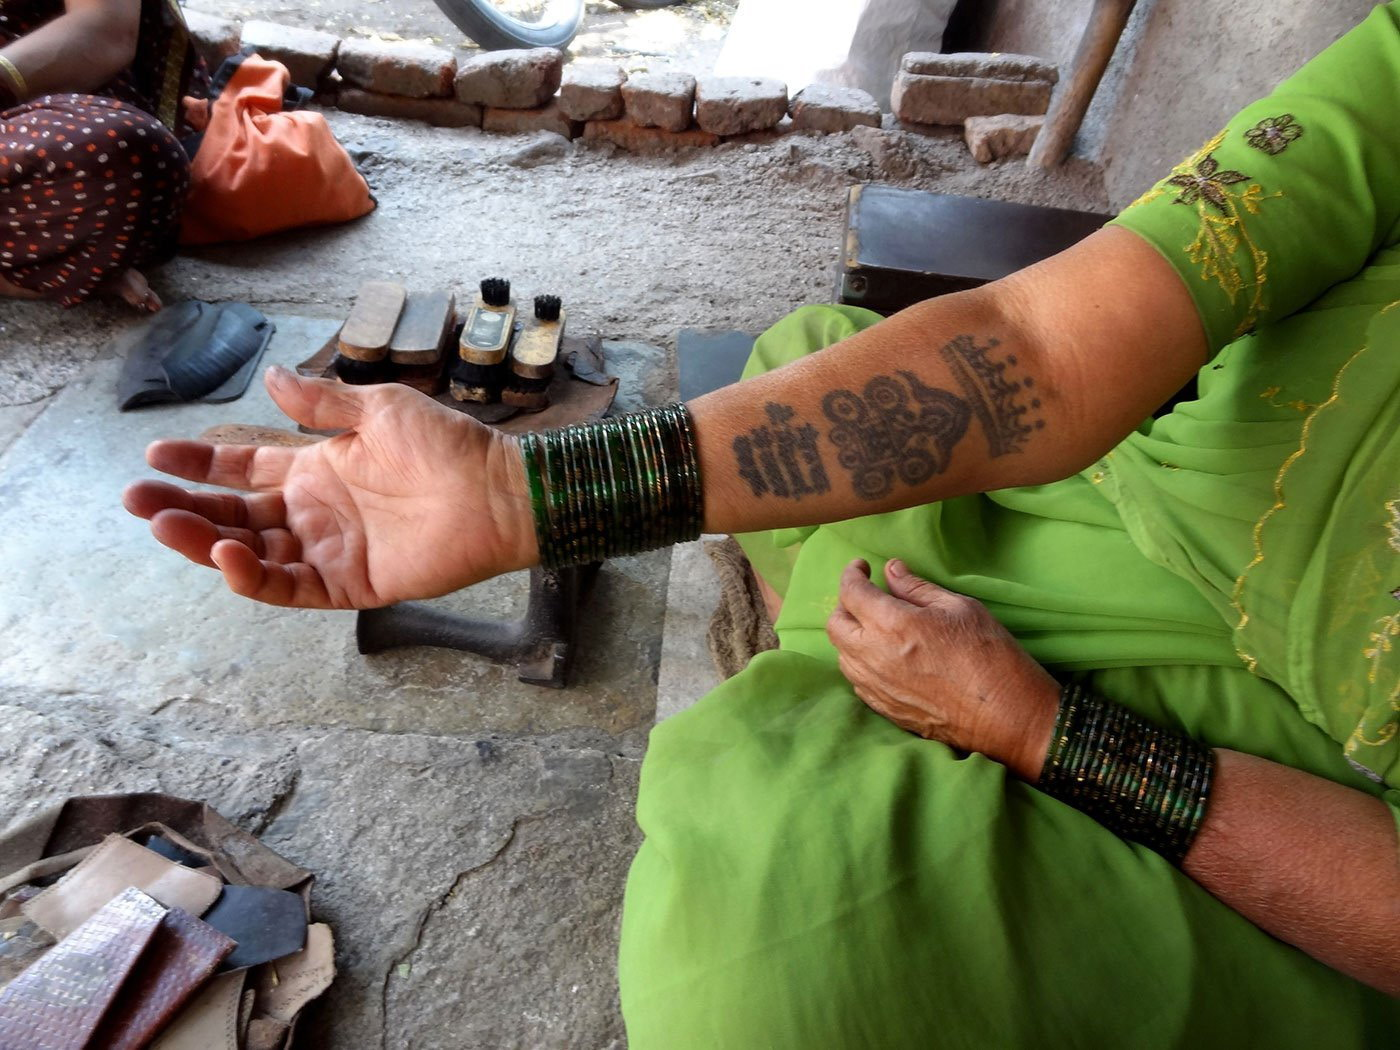 07-Bhamabai_Tattoo2_DSC01565-NW-Fixing Straps and Mending Soles.jpg